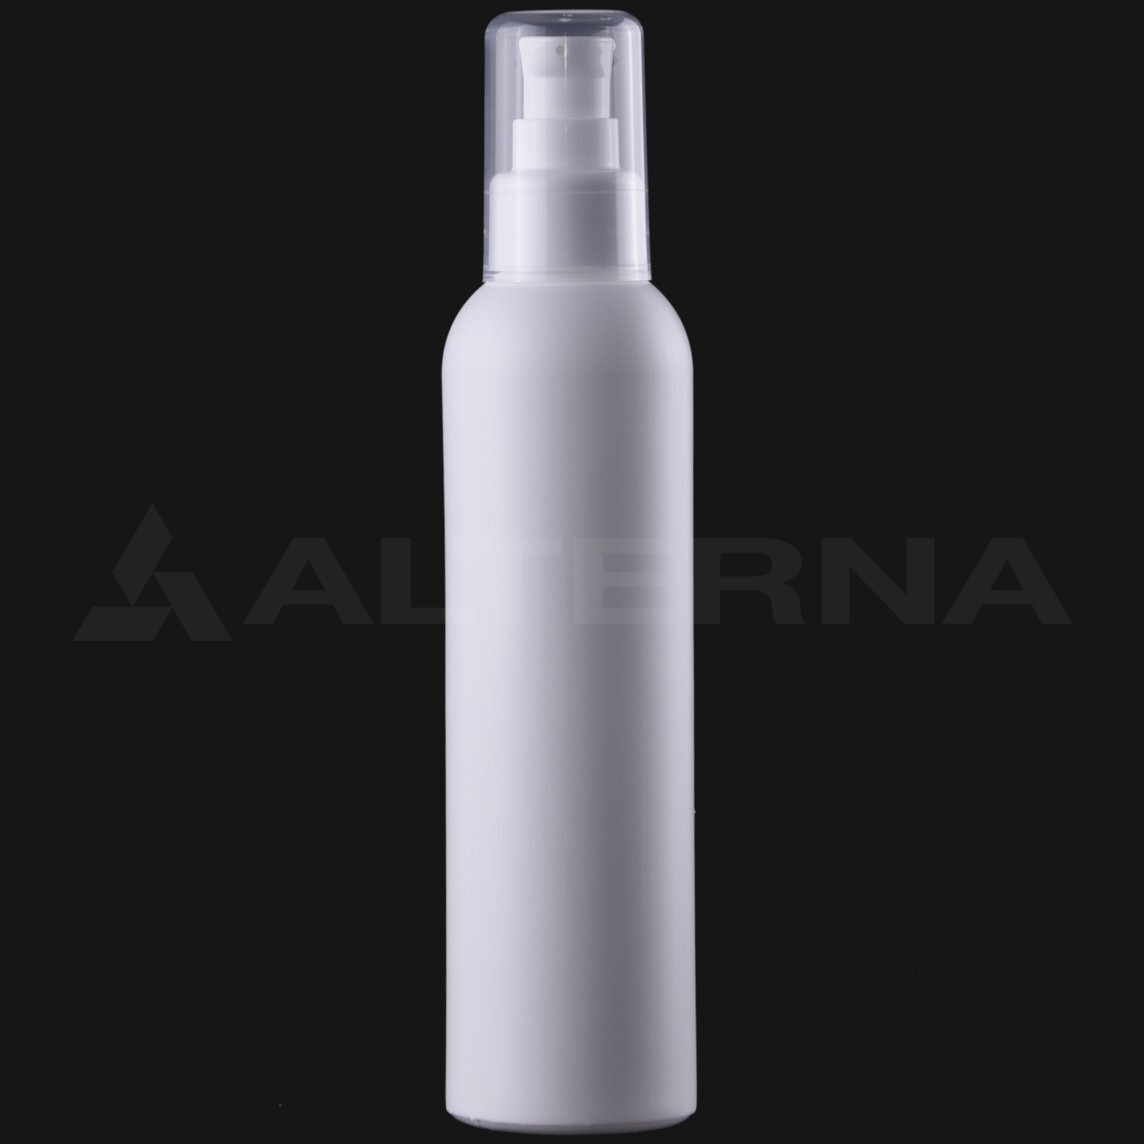 200 ml HDPE Bottle with 24 mm Lotion Pump